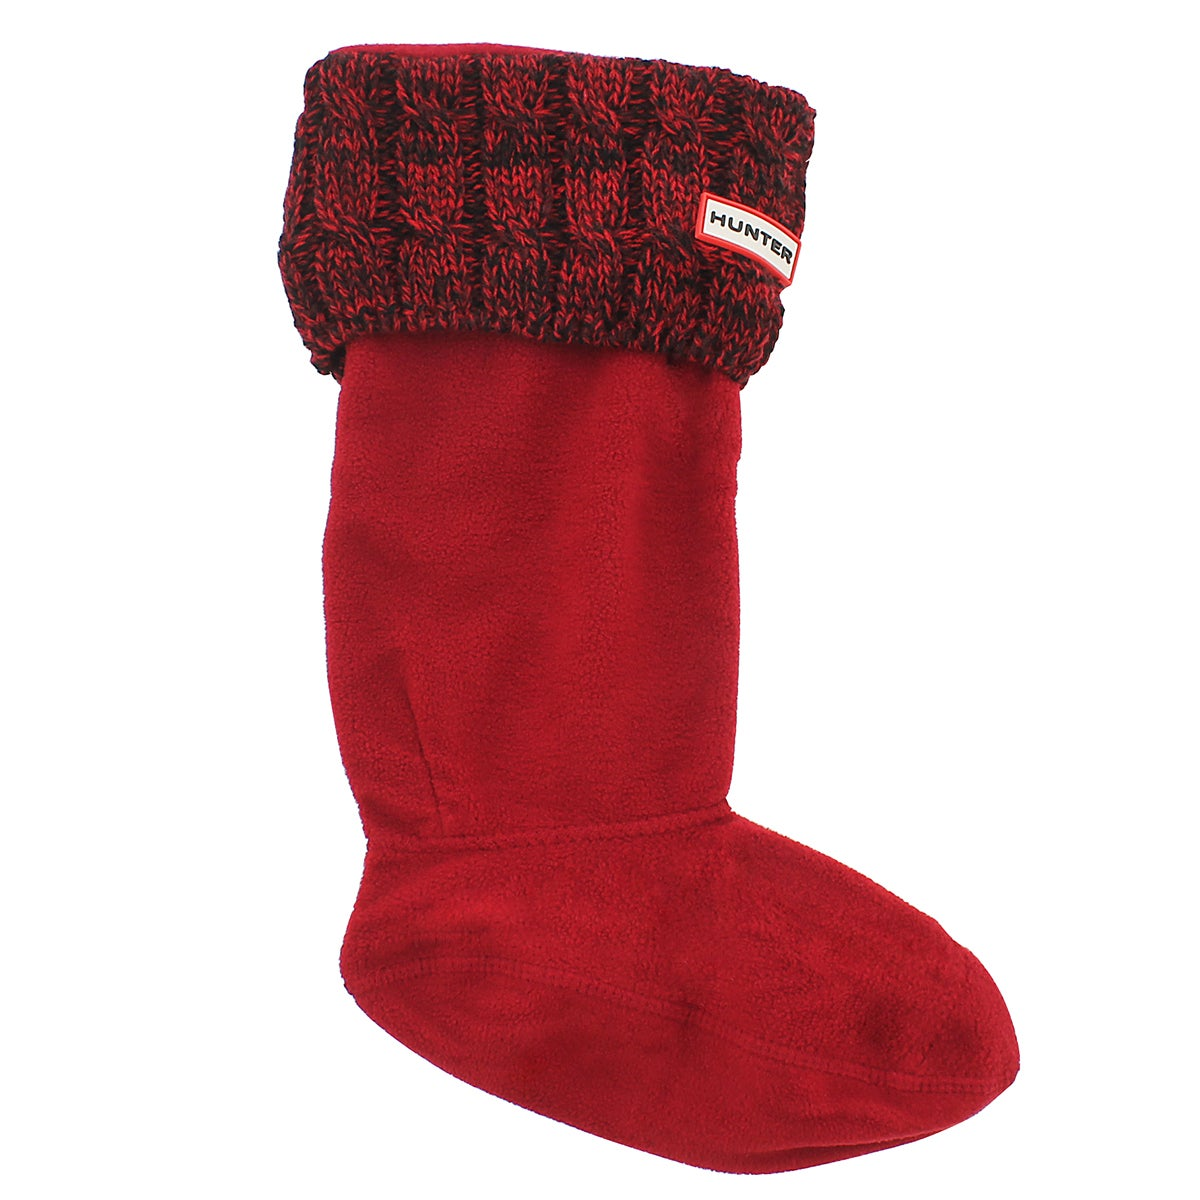 Lds 6 Stitch Cable red/dulse boot sock